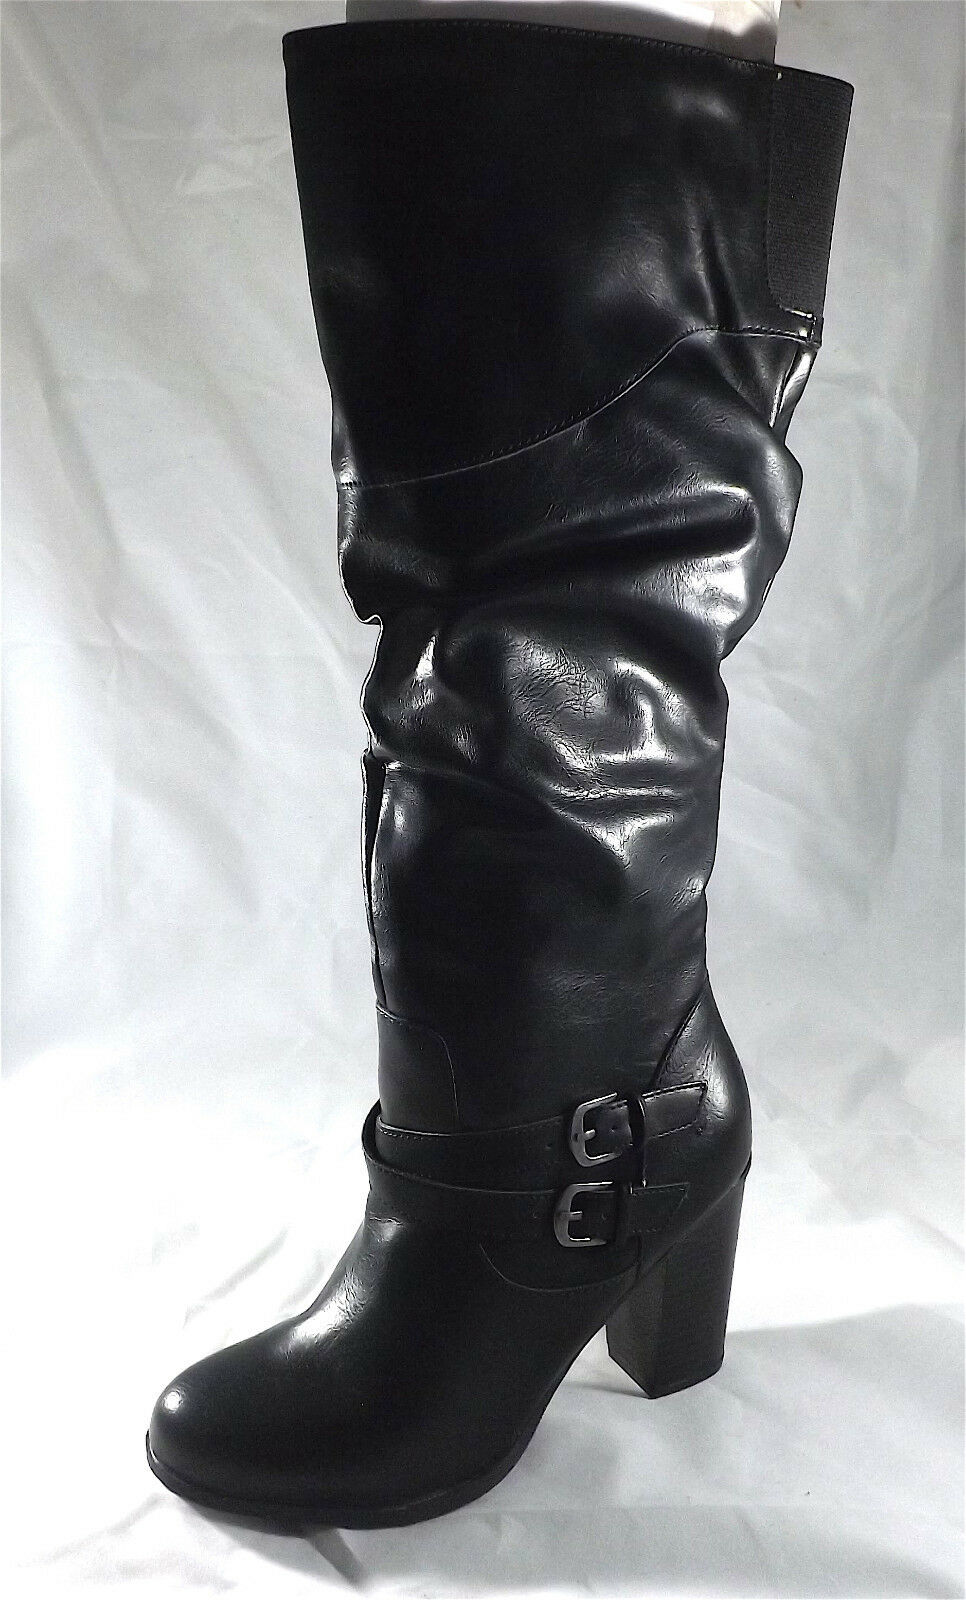 STYLE & CO CO CO (SOPHIIEP BLACK BOOT) WOMEN'S SIZE 6.5 BRAND NEW bf9f87